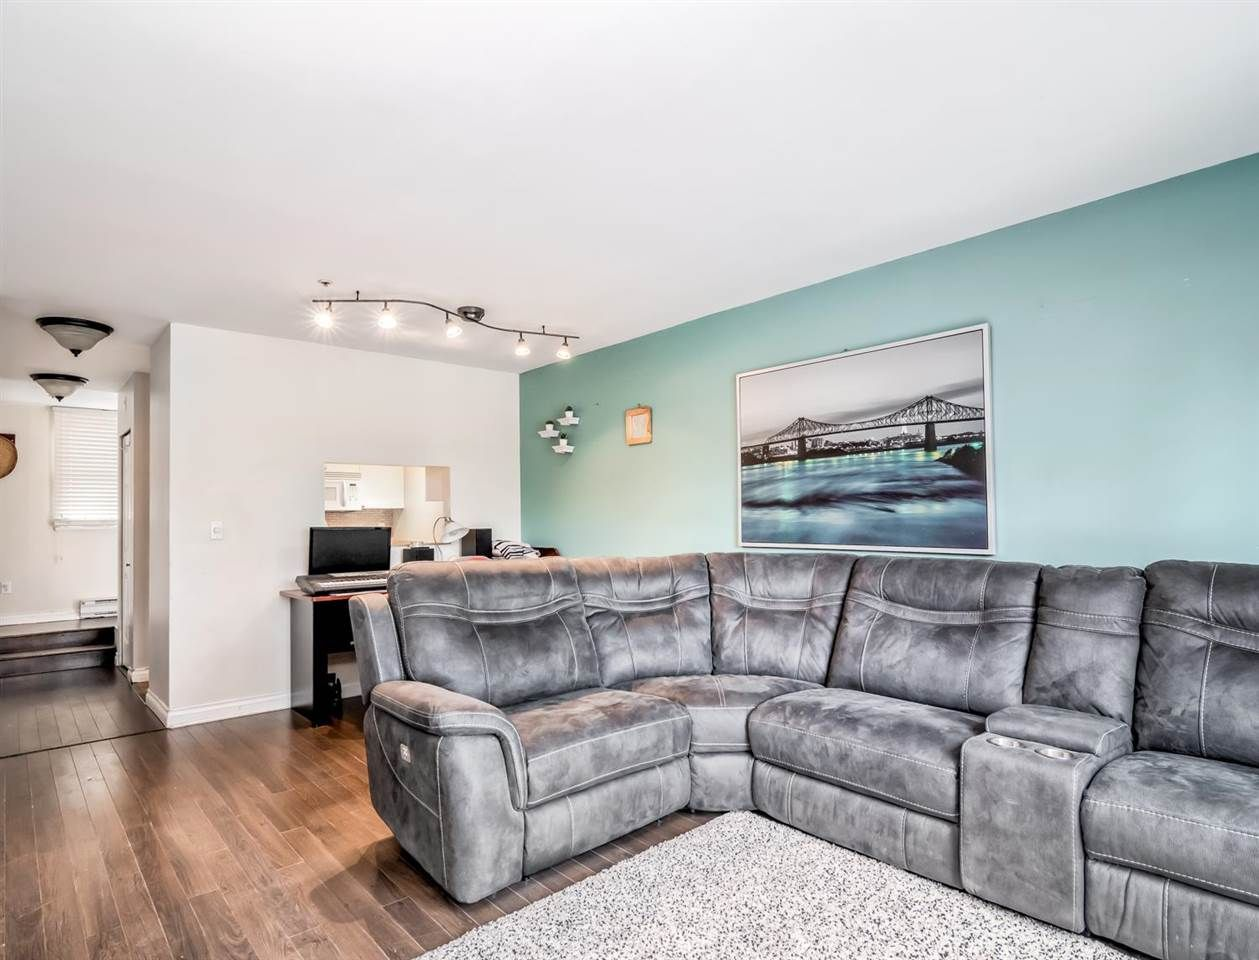 """Main Photo: 14 3200 WESTWOOD Street in Port Coquitlam: Central Pt Coquitlam Condo for sale in """"Hidden Hills"""" : MLS®# R2585501"""